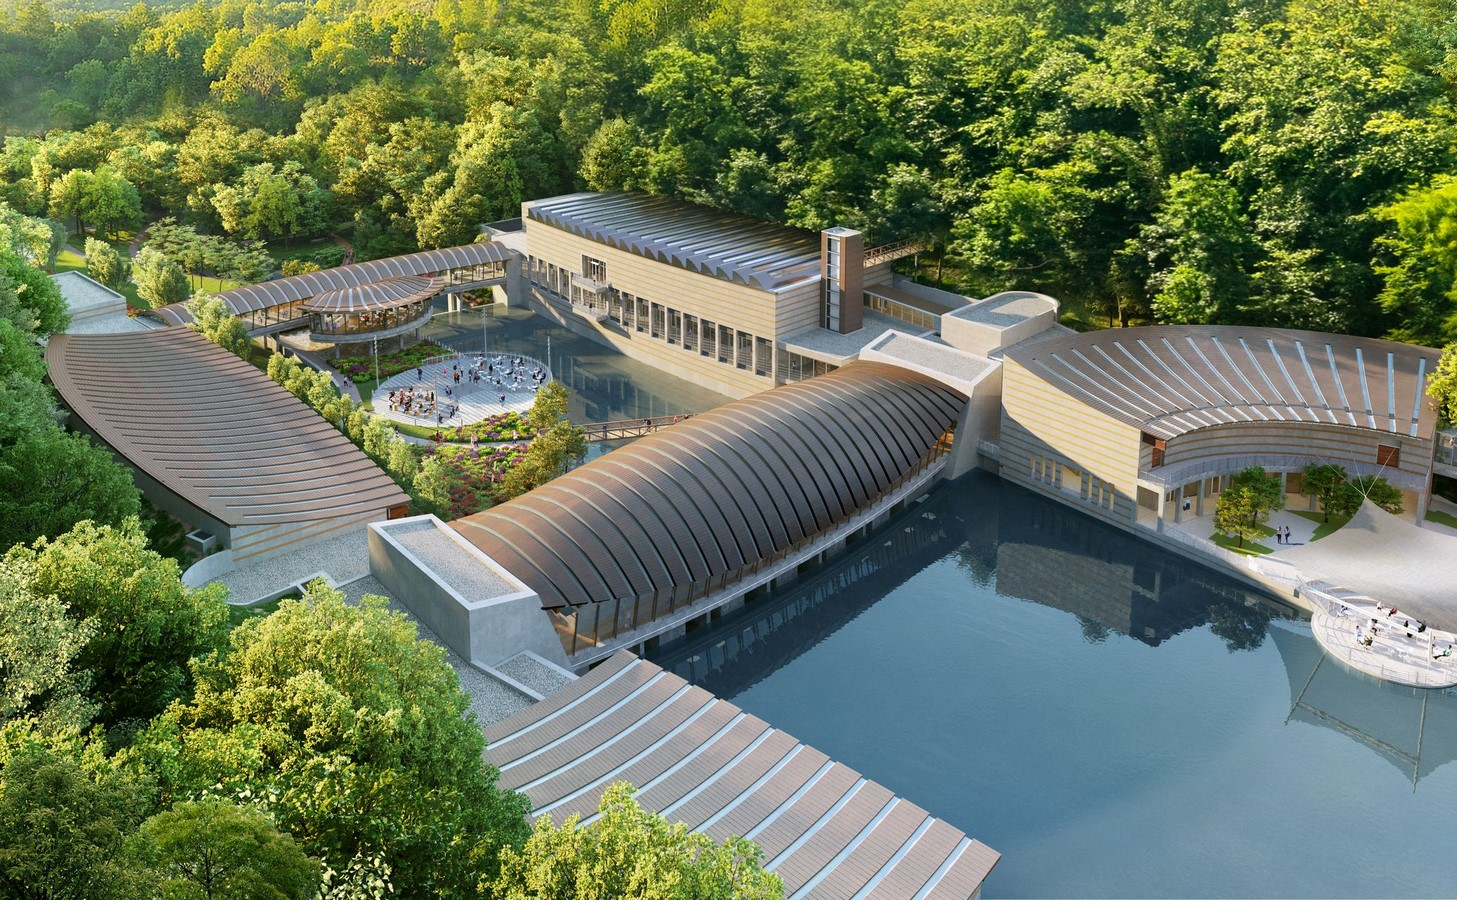 Crystal Bridges Museum Of American Art In Bentonville expansion plans revealed by Safdie Architects - Sheet2